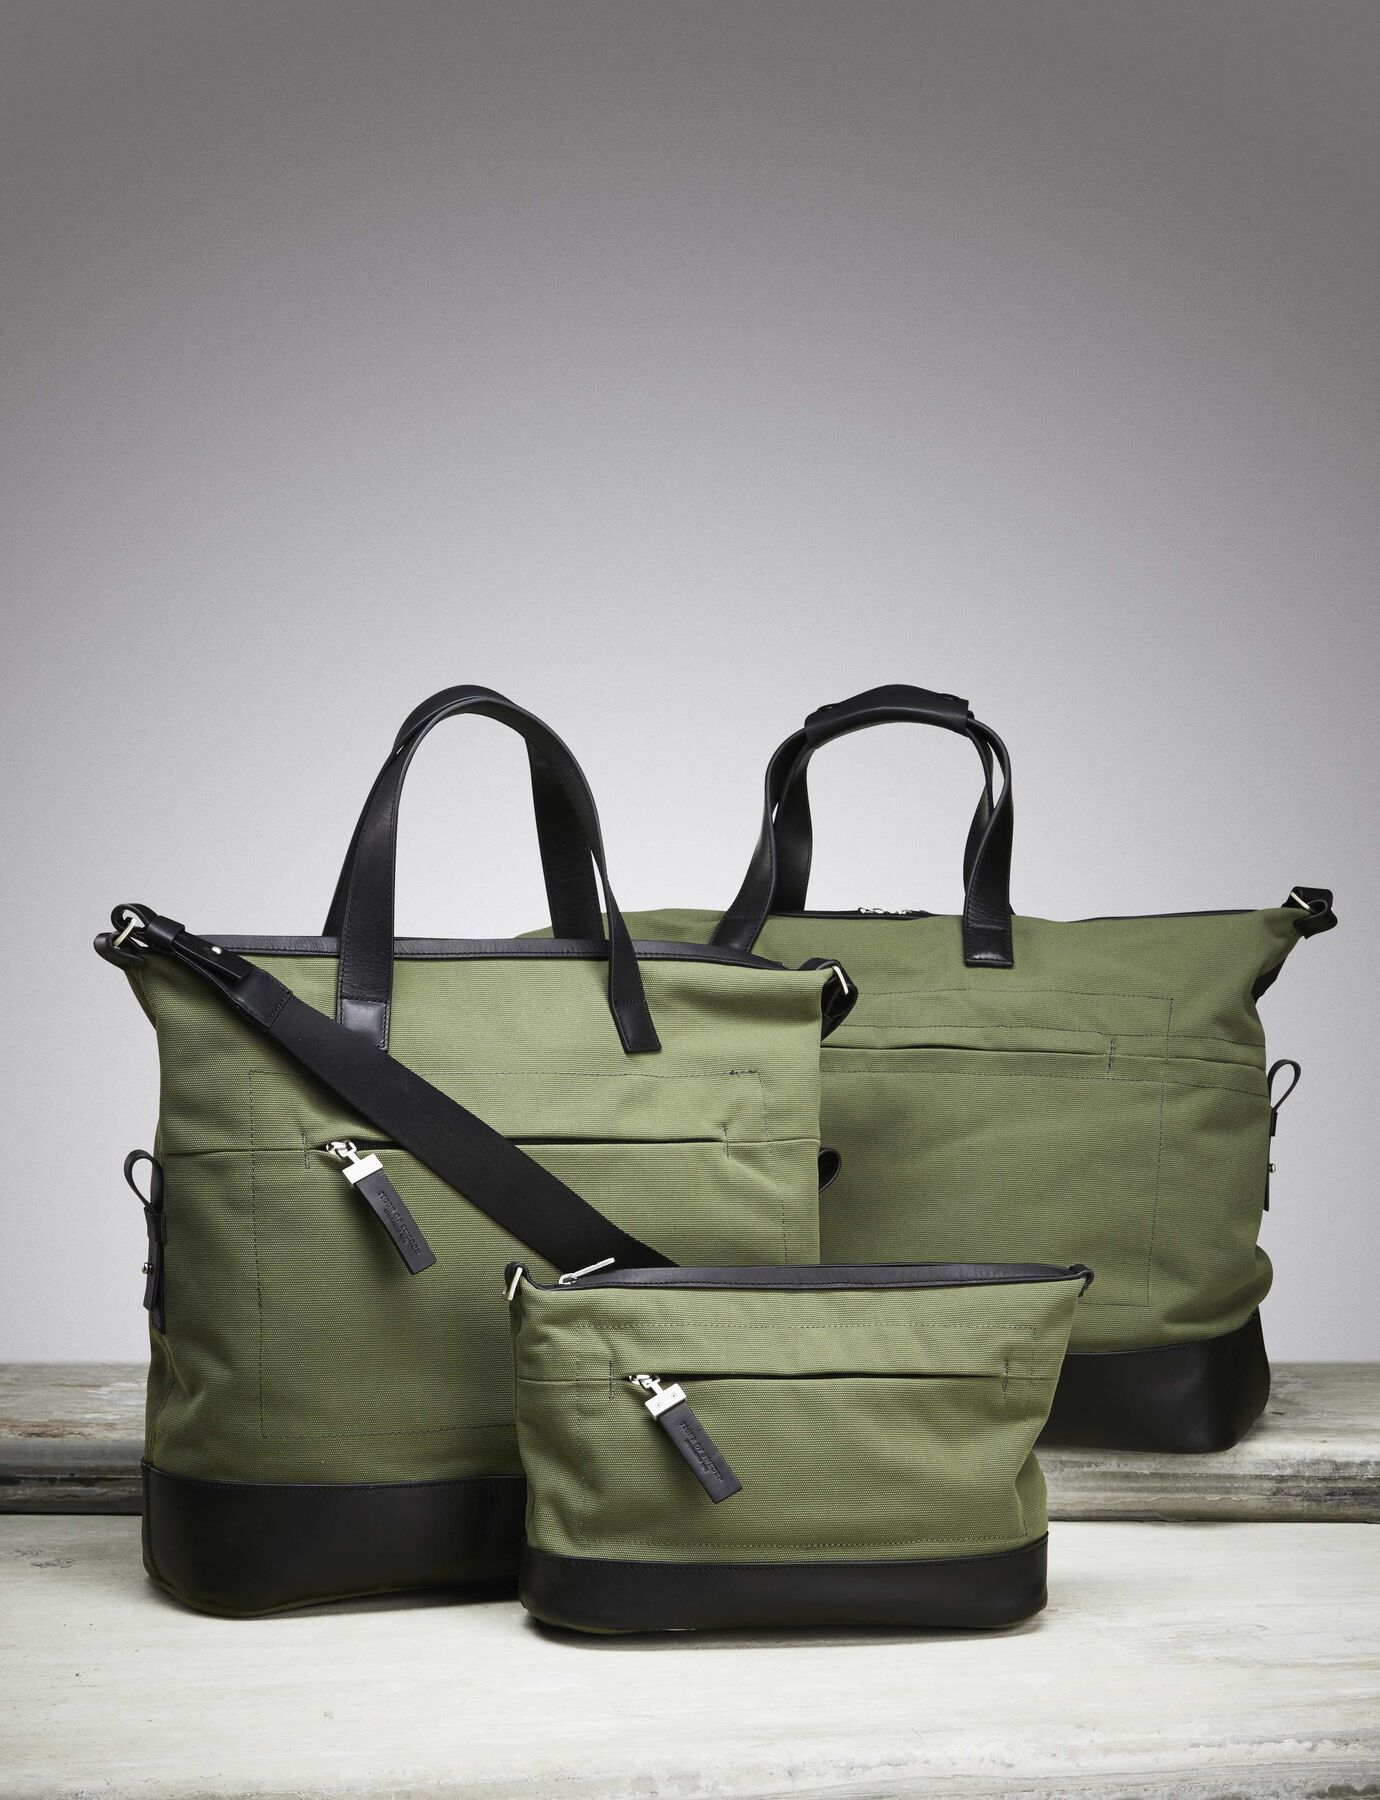 THORNE BAG in Deep Olive from Tiger of Sweden